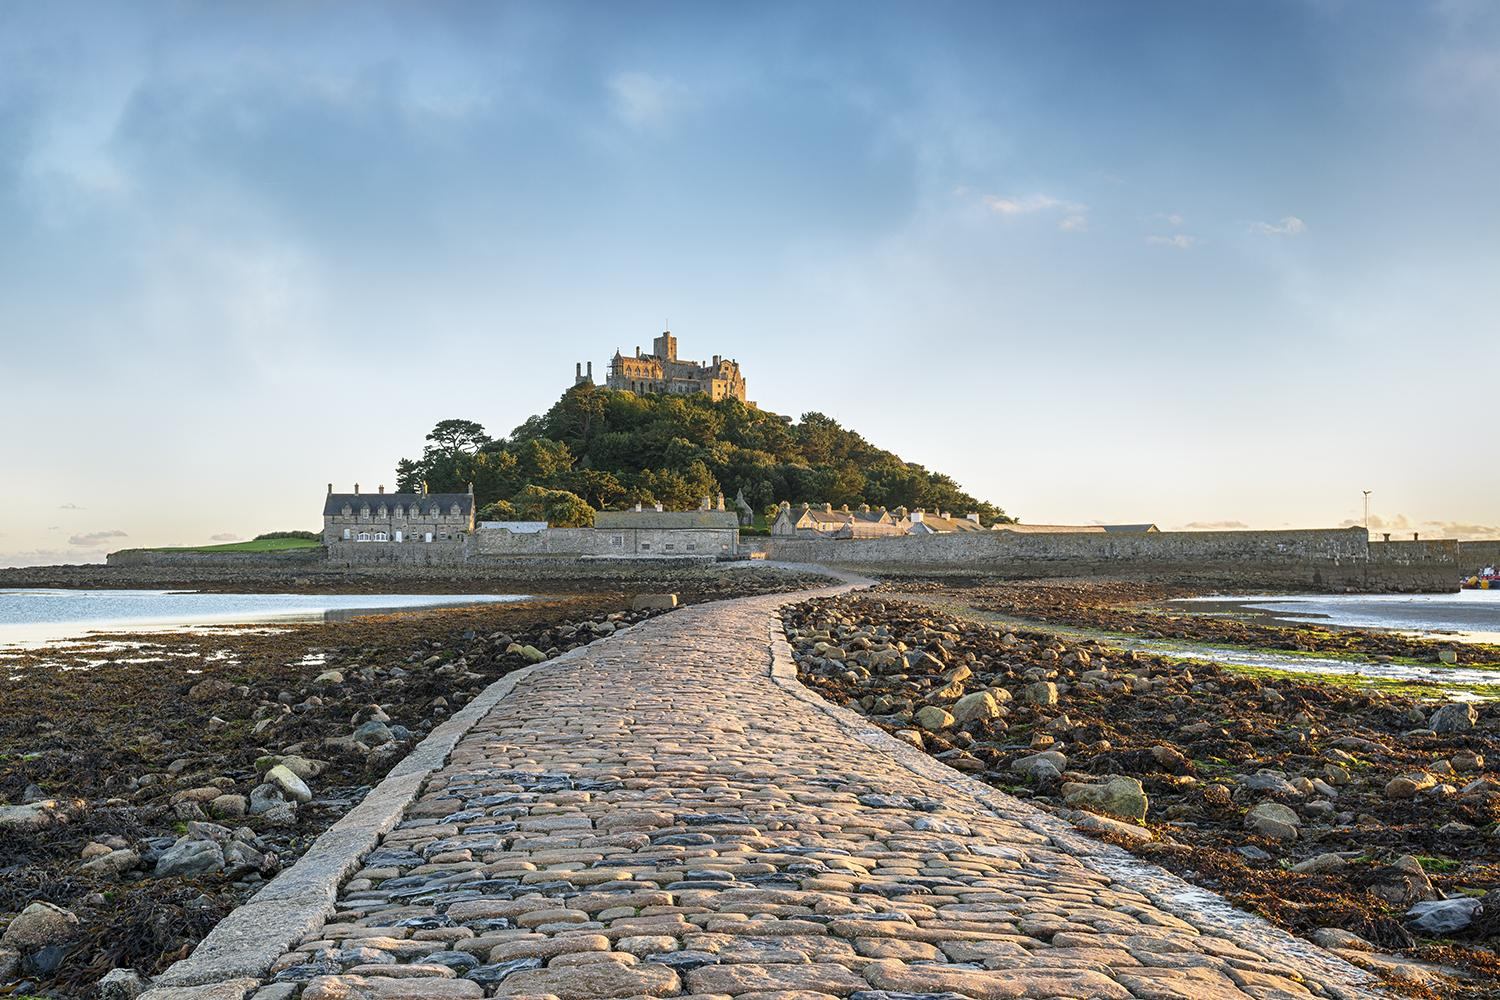 Cornwall: Padstow to St Michael's Mount